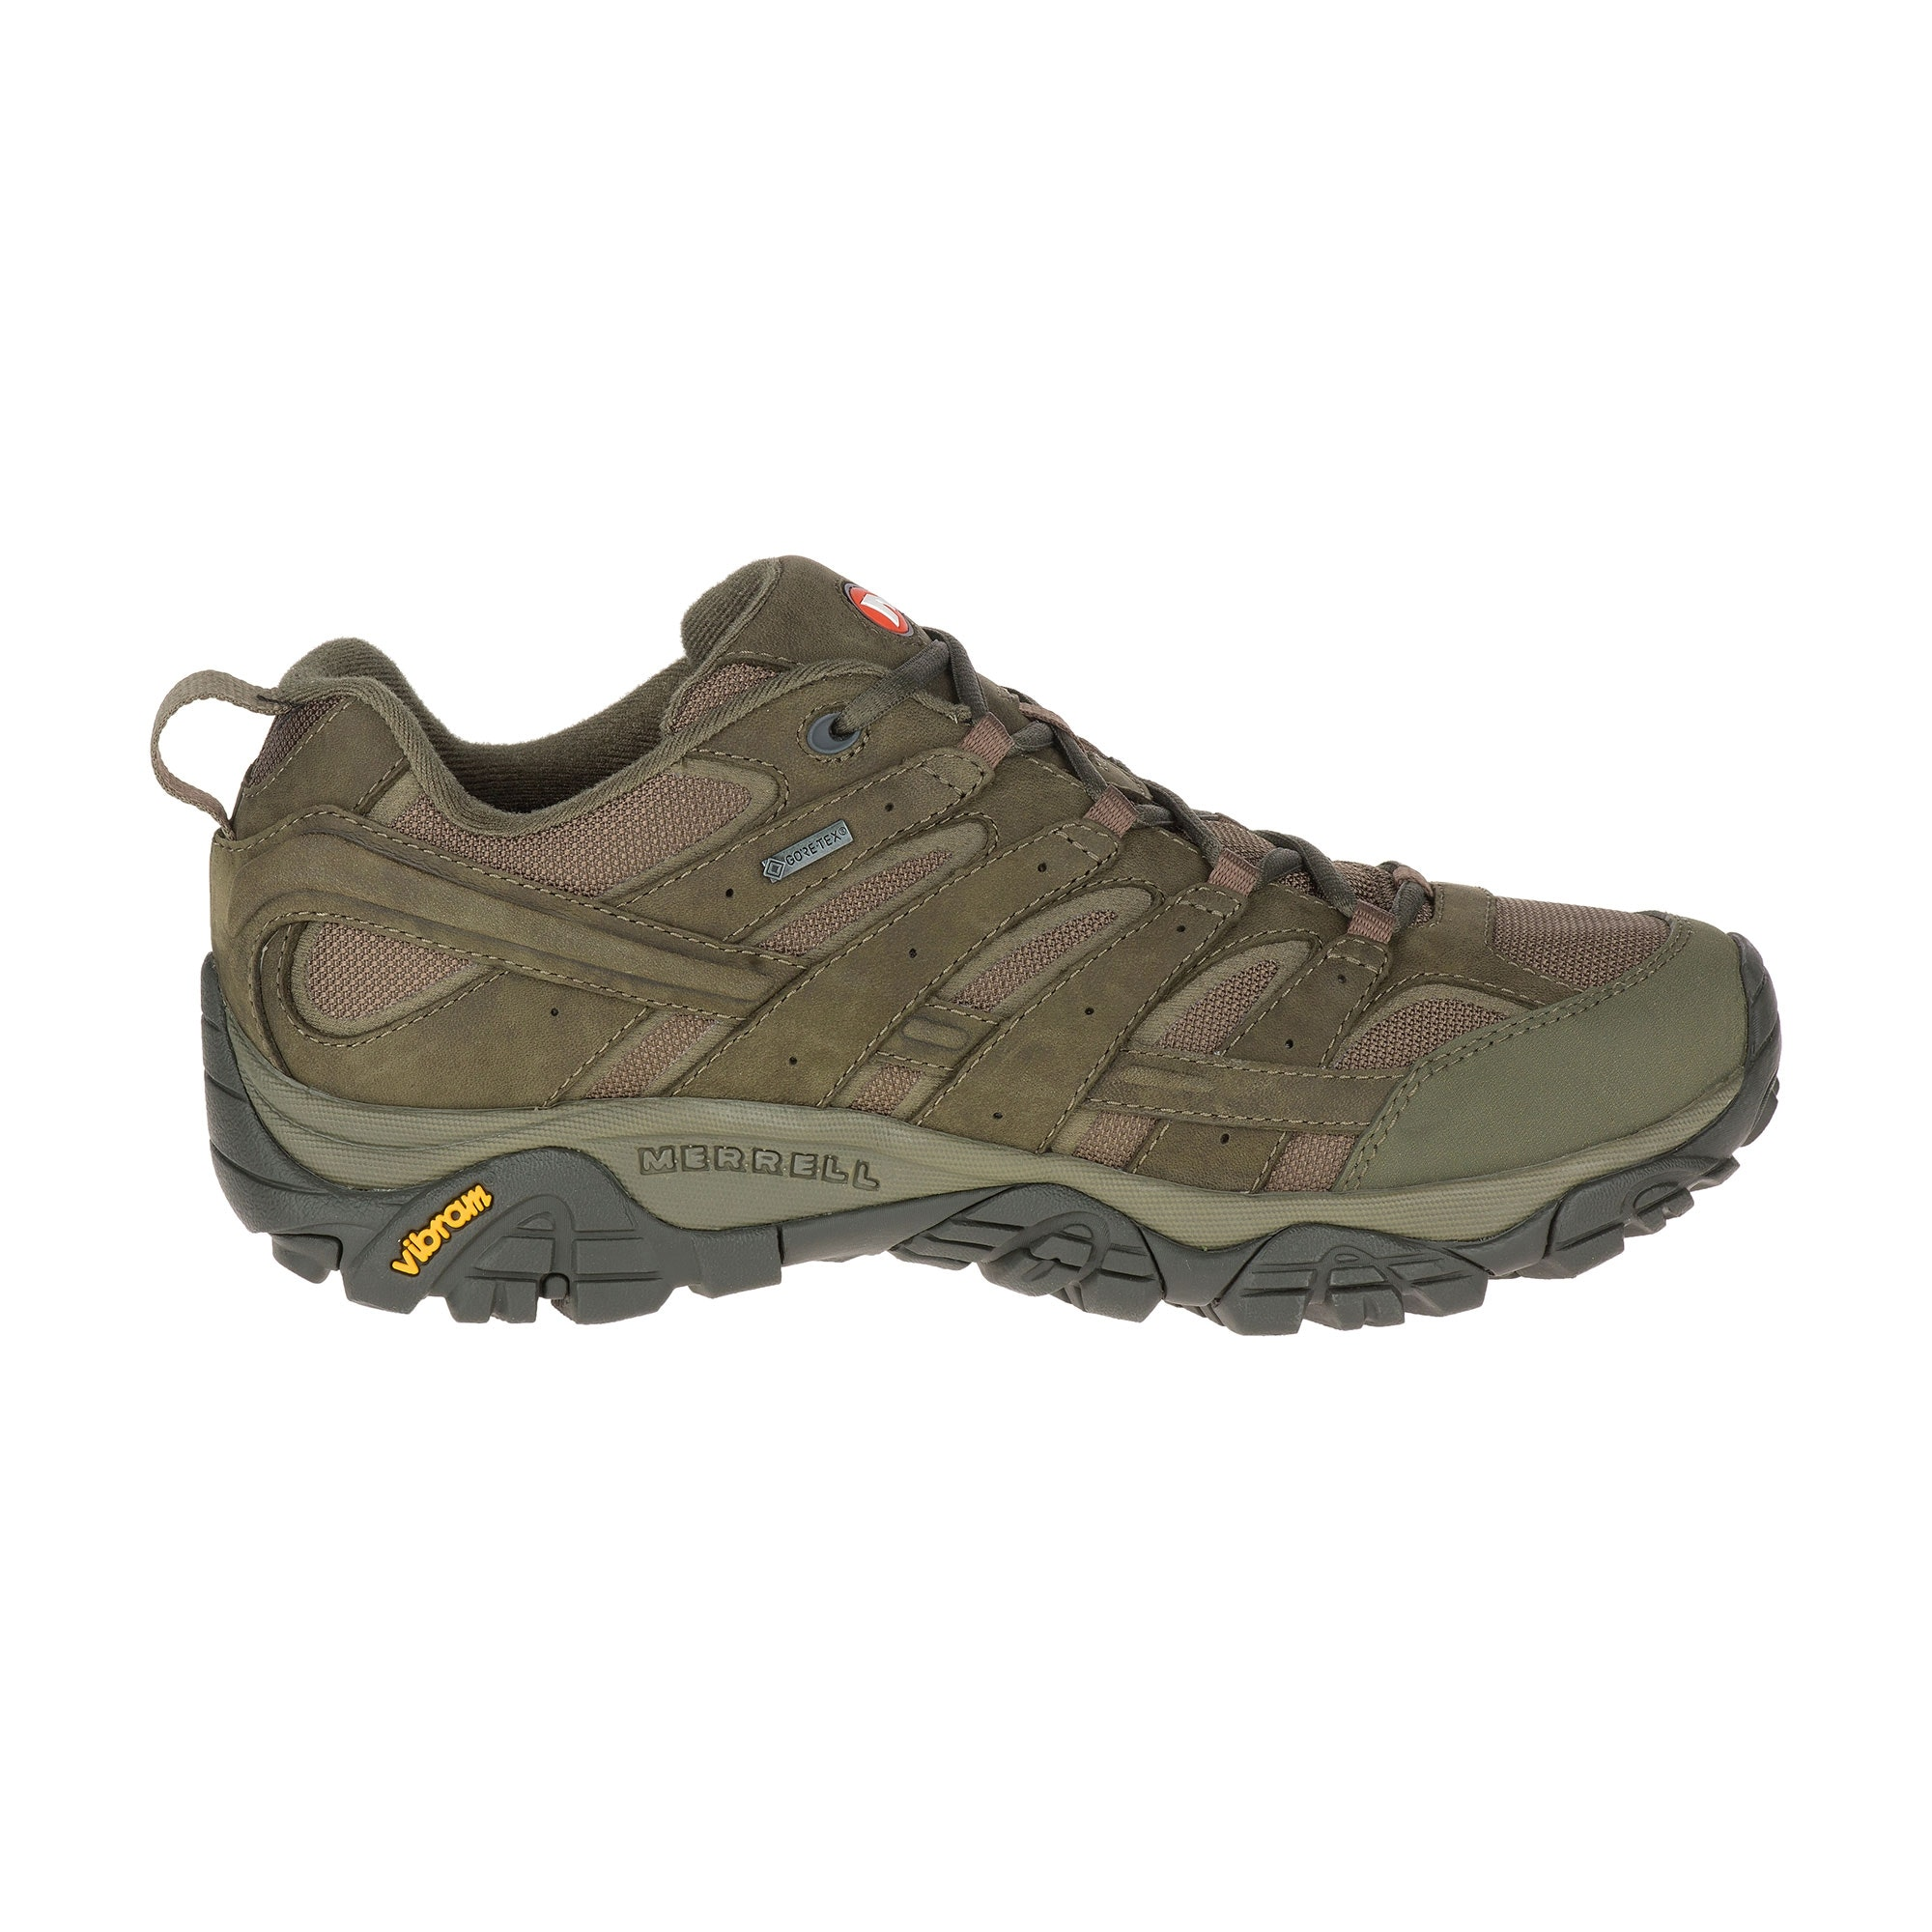 7466b18aac Merrell Moab 2 Smooth Men's Gore-Tex Hiking Shoes